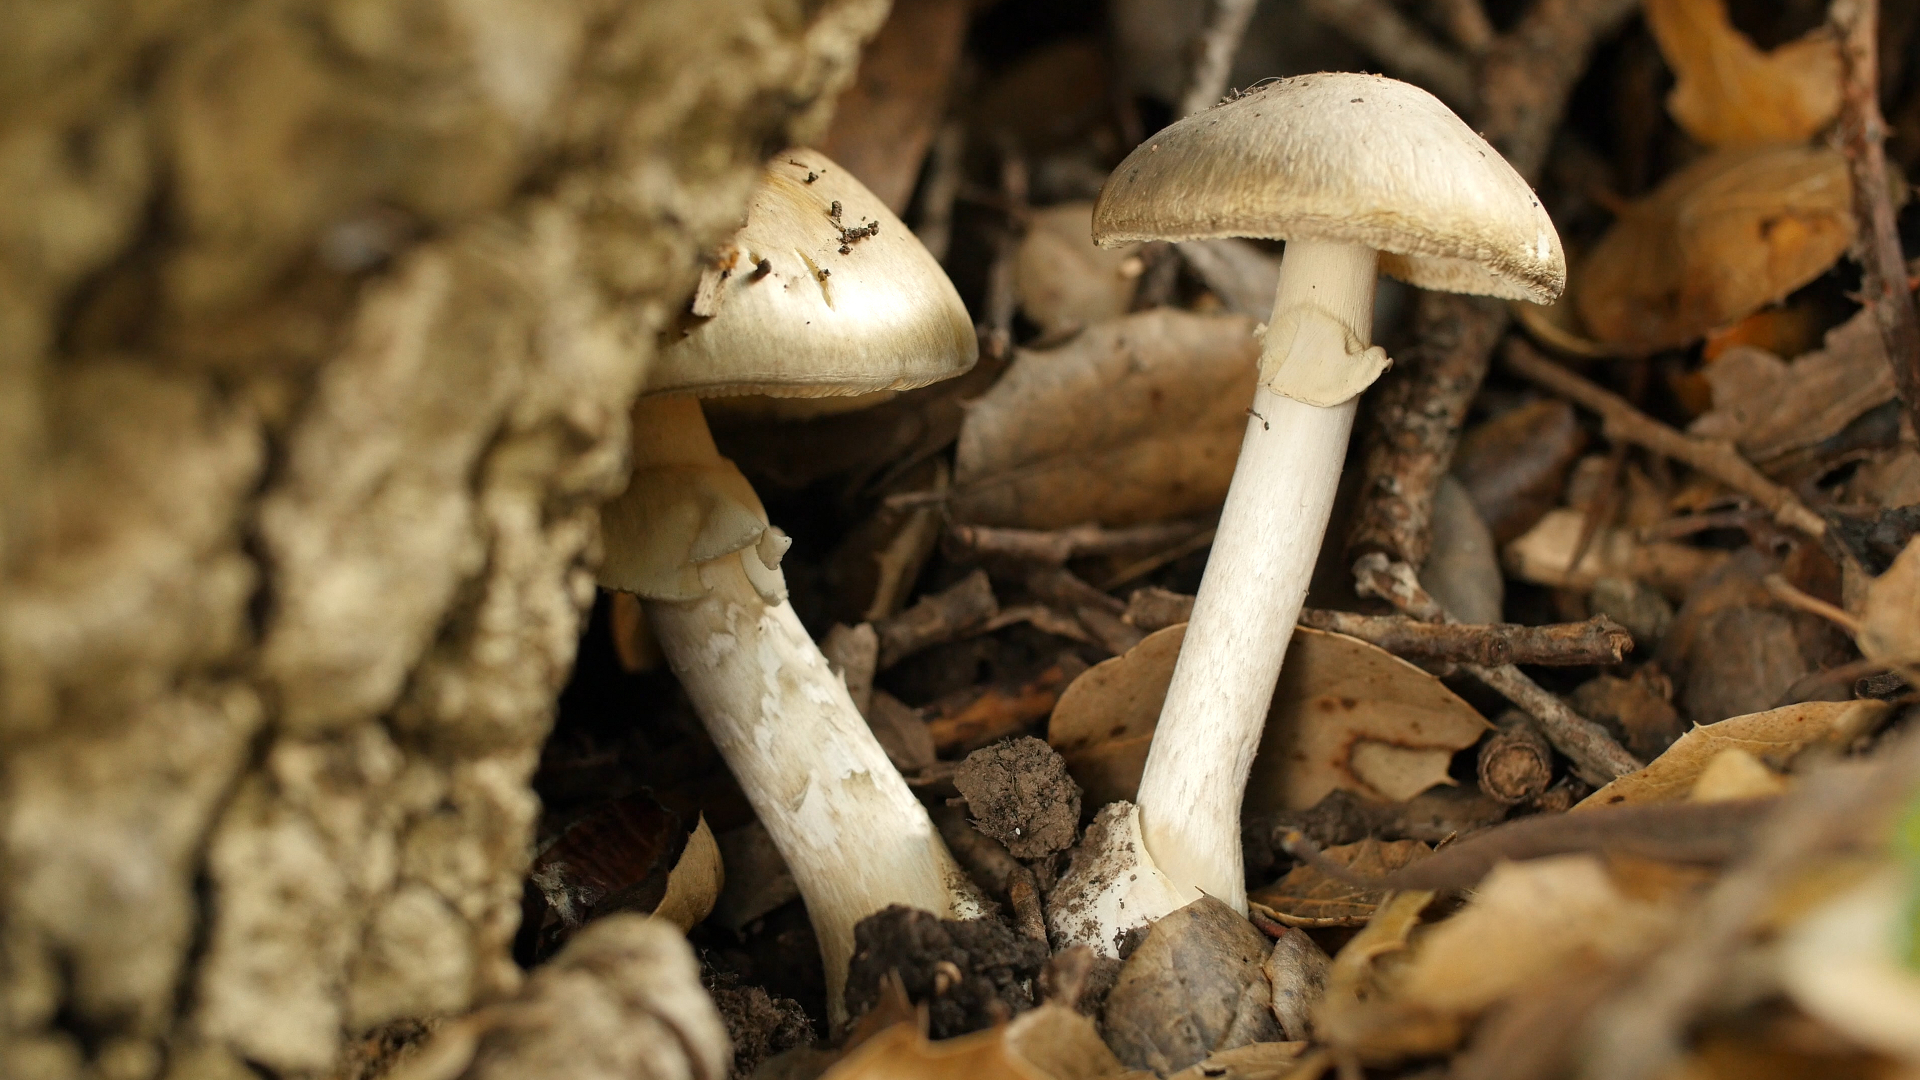 this mushroom starts killing you before you even realize it deep